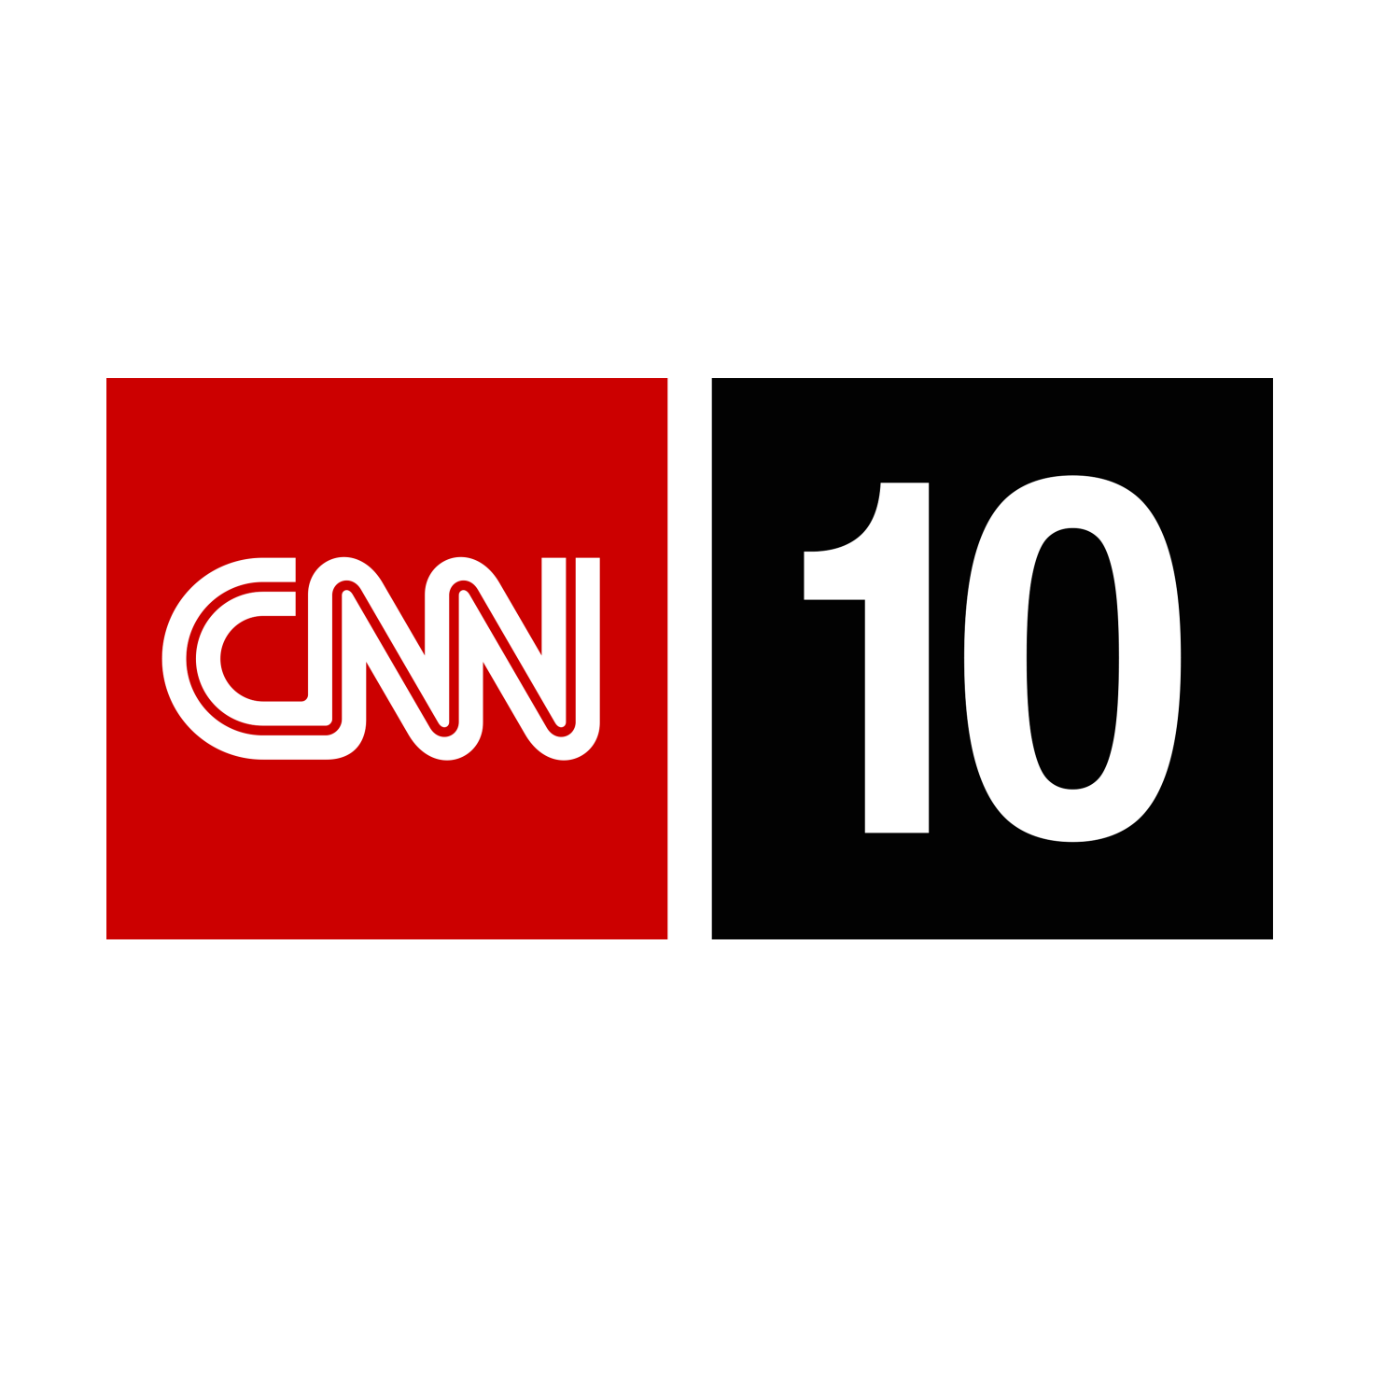 CNN Student News - September 19, 2012